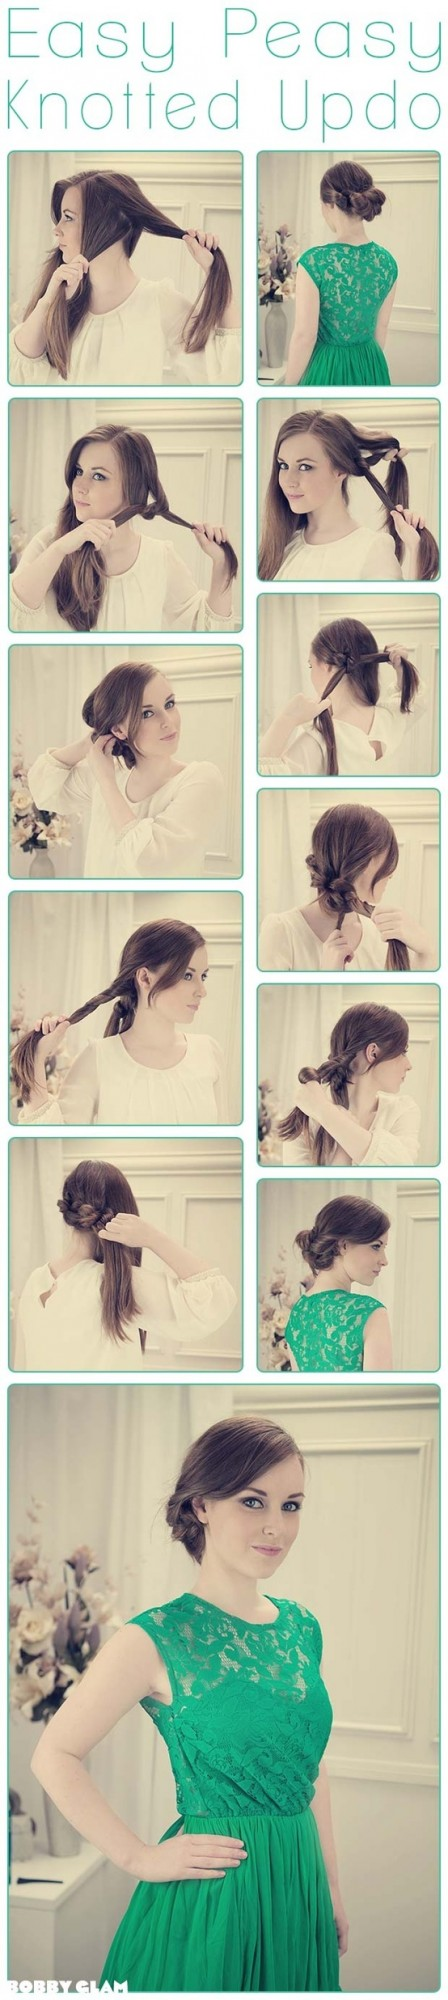 22 Simple and cute hairstyle tutorials you should definitely try it (11)